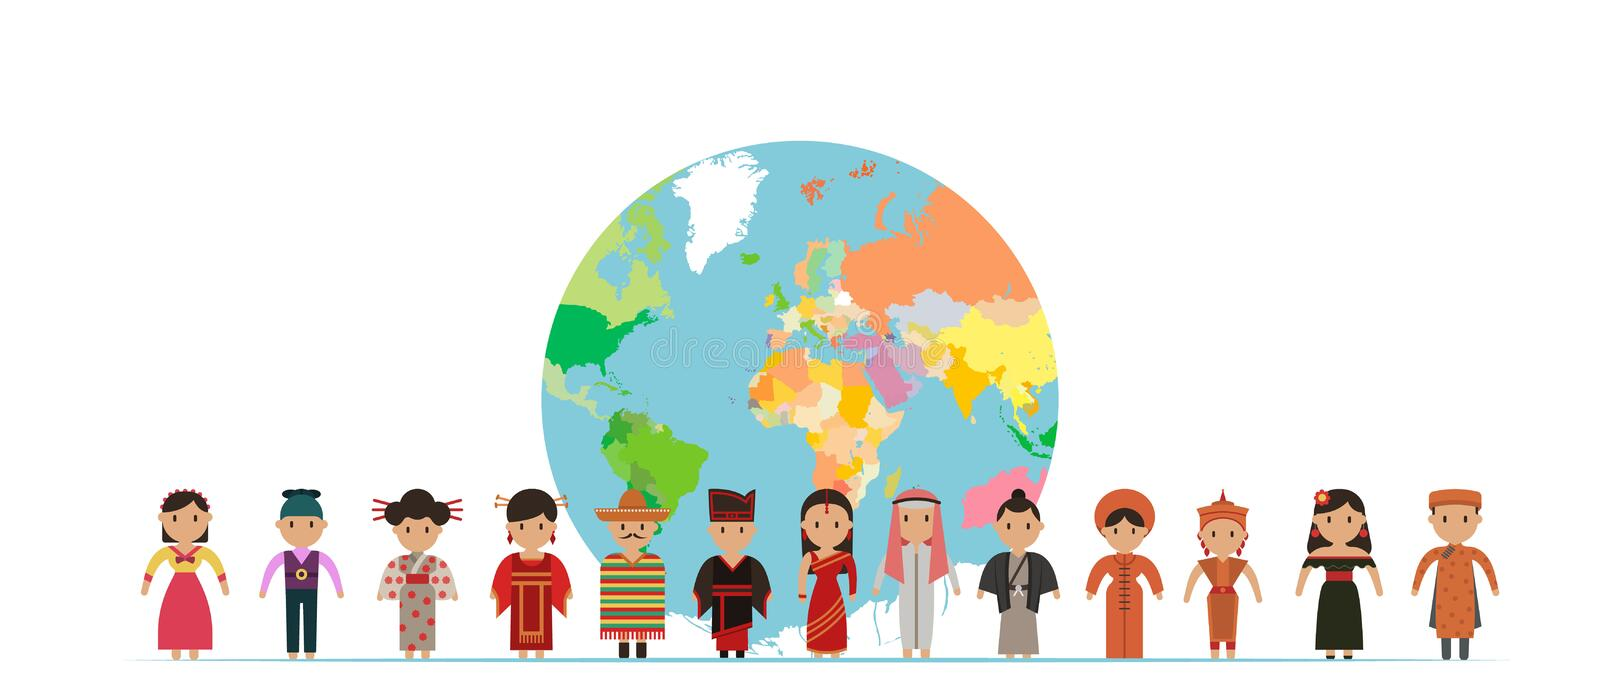 World kids. International friendship day! Vector illustration of diverse Children around the planet. On white background royalty free illustration